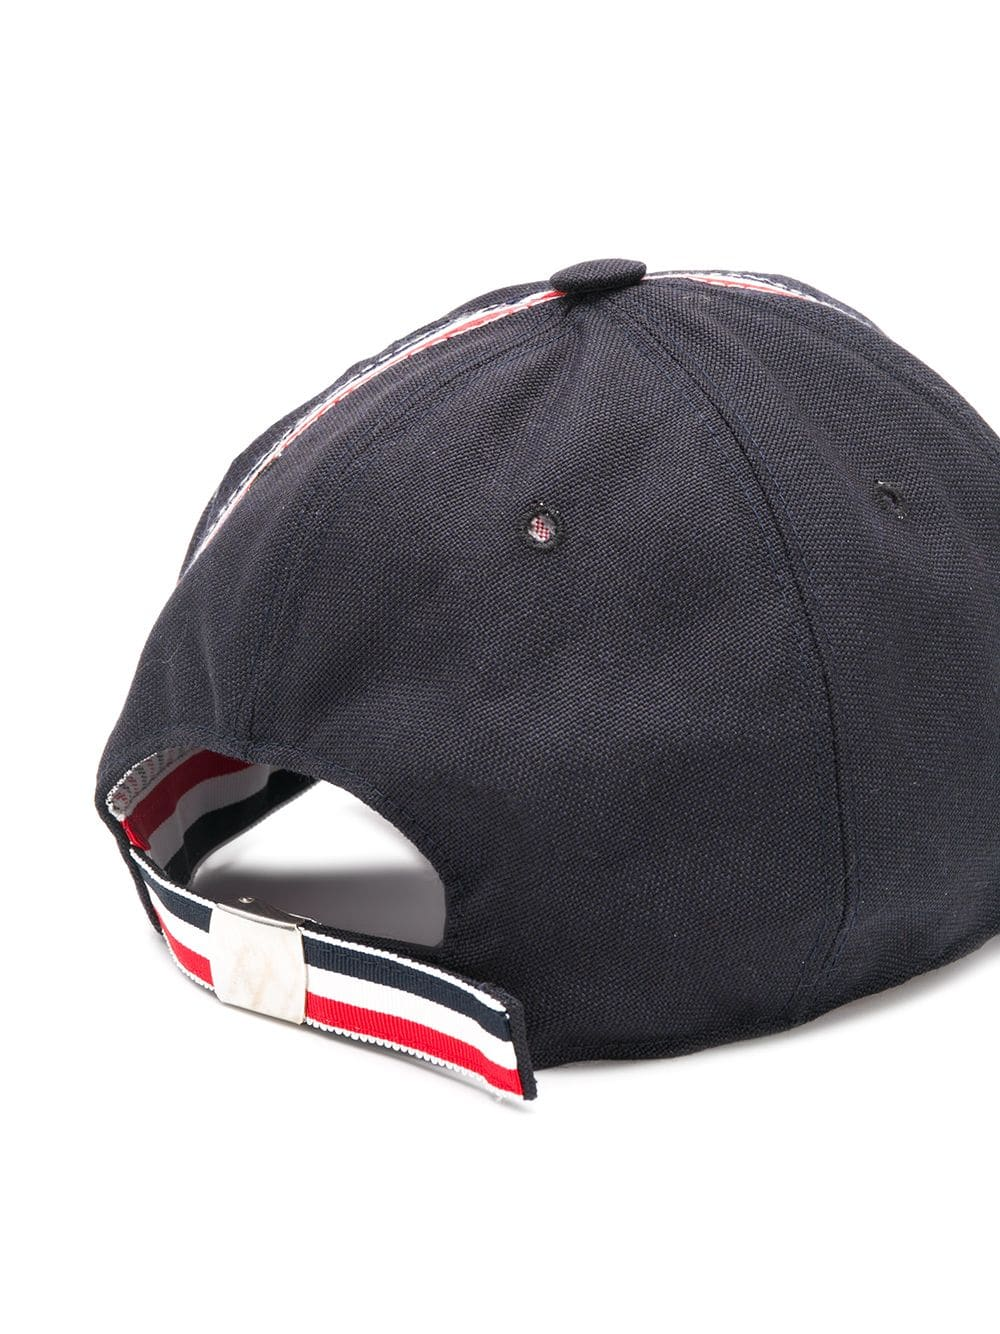 THOM BROWNE MEN BASEBALL CAP W/ OVERLAPPED RWB SELVEDGE PLACEMENT IN 3 PLY WOOL MOHAIR